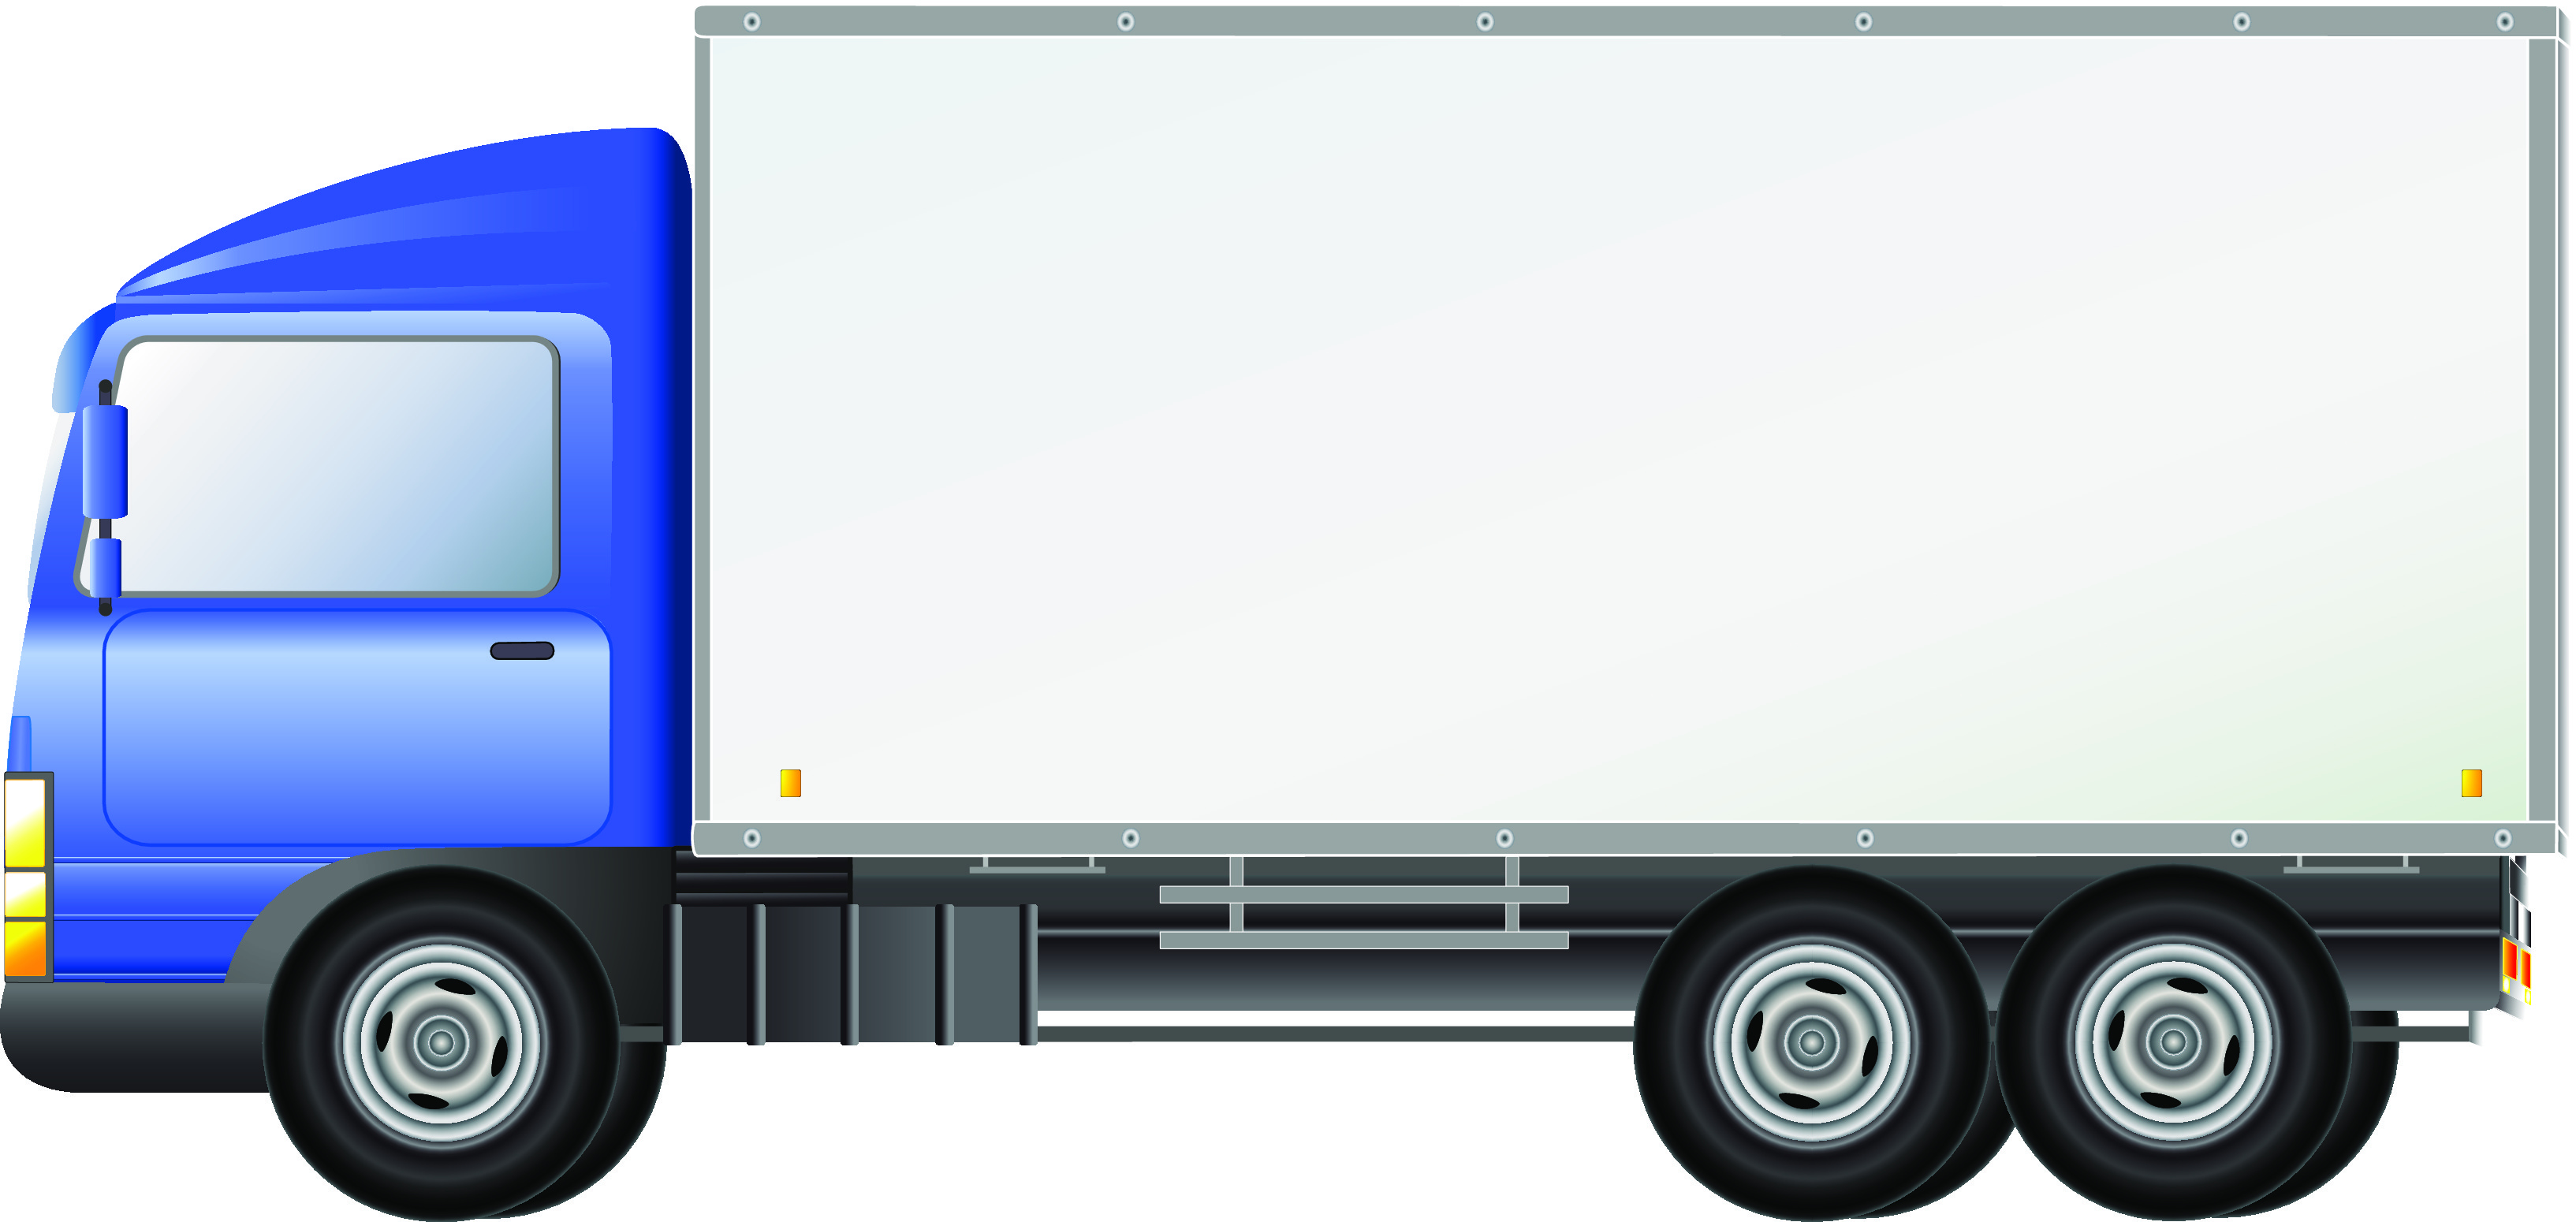 Cartoon delivery truck clipart image free library Free Delivery Truck Images, Download Free Clip Art, Free Clip Art on ... image free library